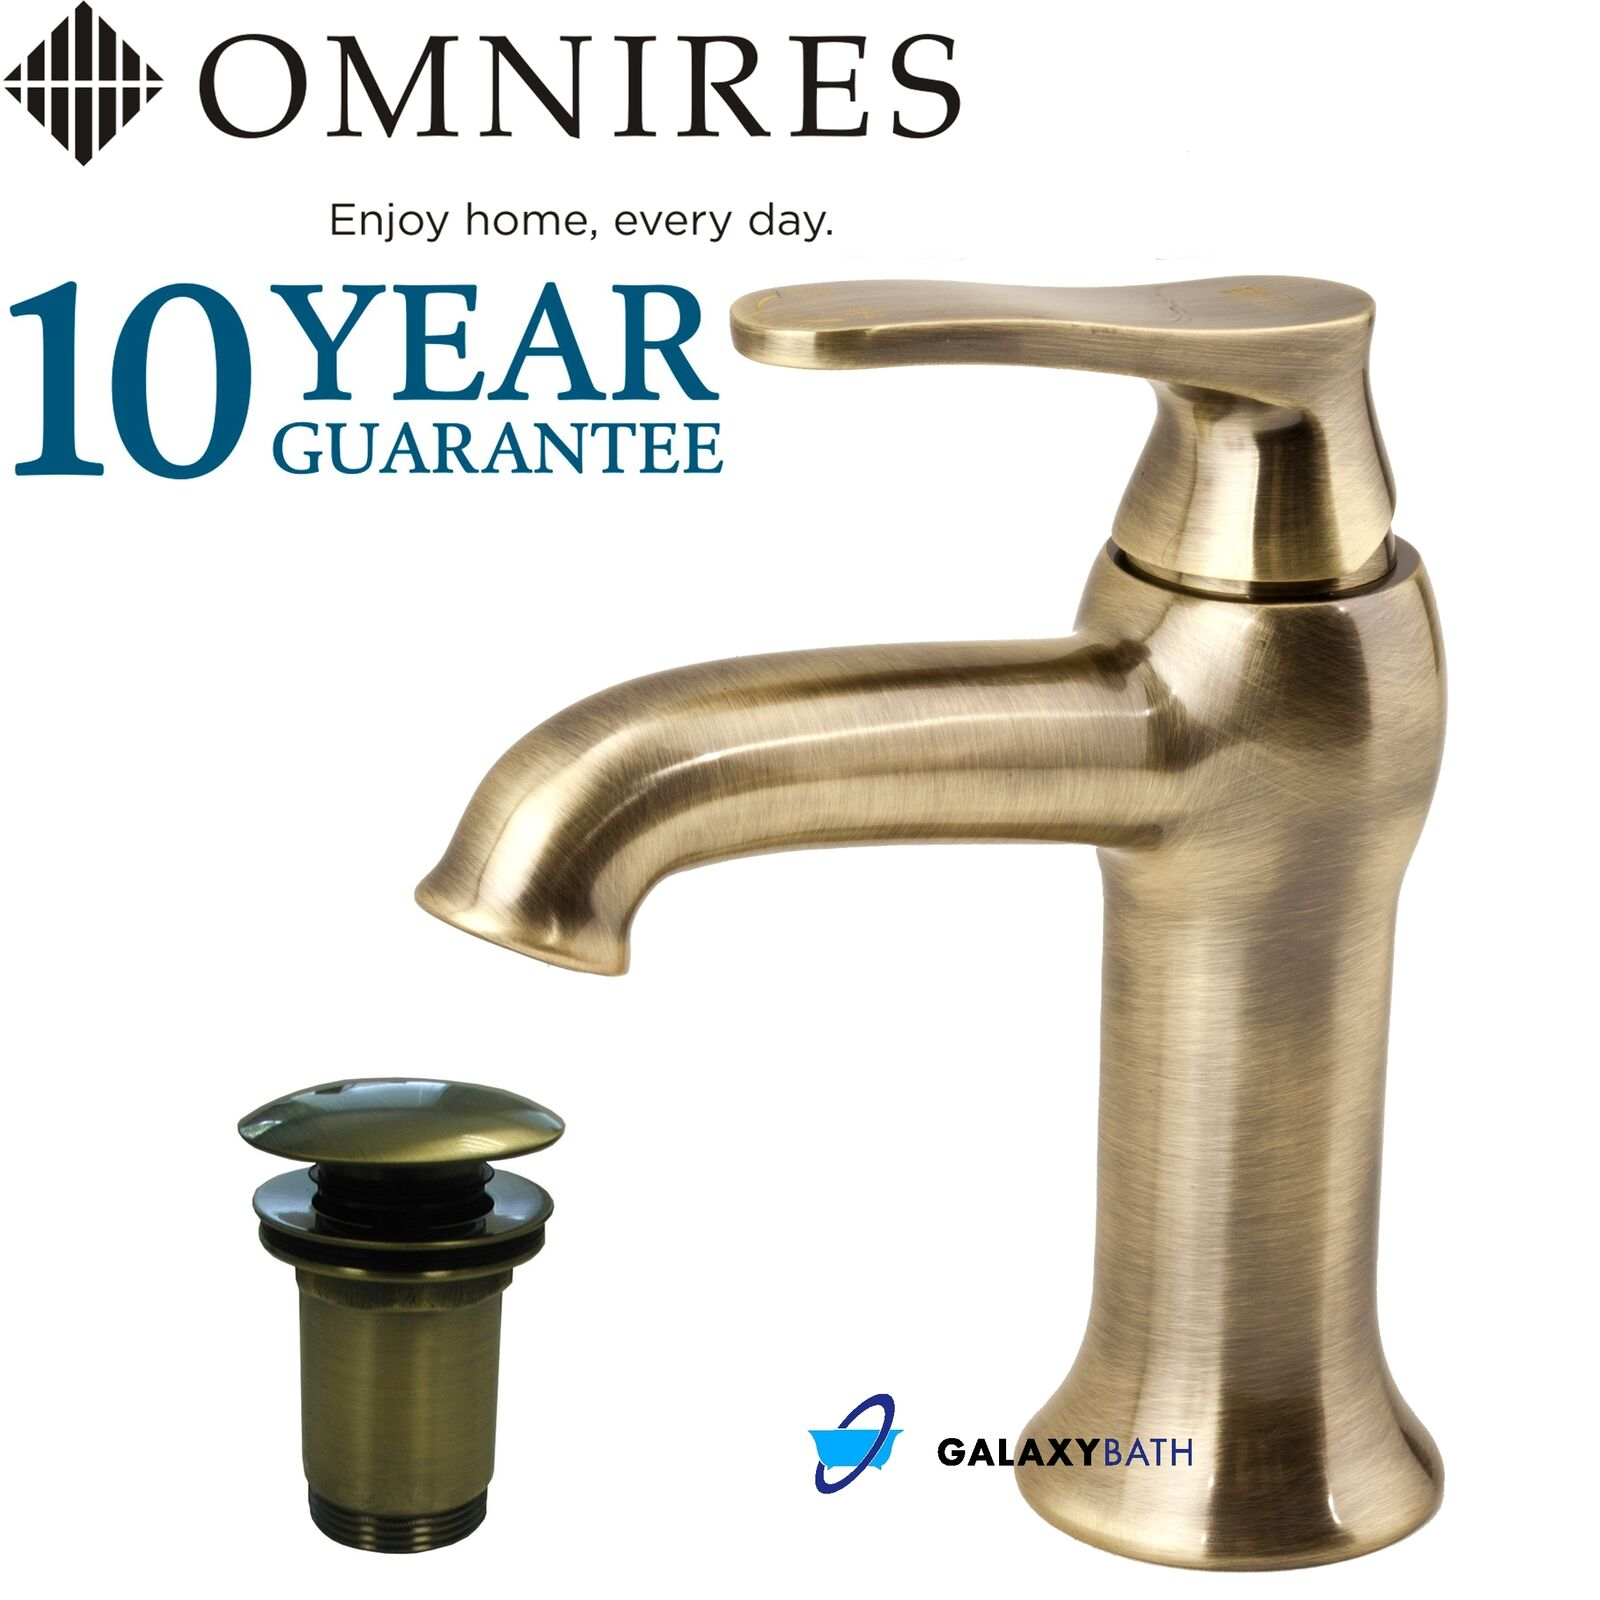 OMNIRES ART DéCO TRADITIONNELLE RETRO ANTIQUE BRONZE LAITON MITIGEUR ROBINET SIMPLE